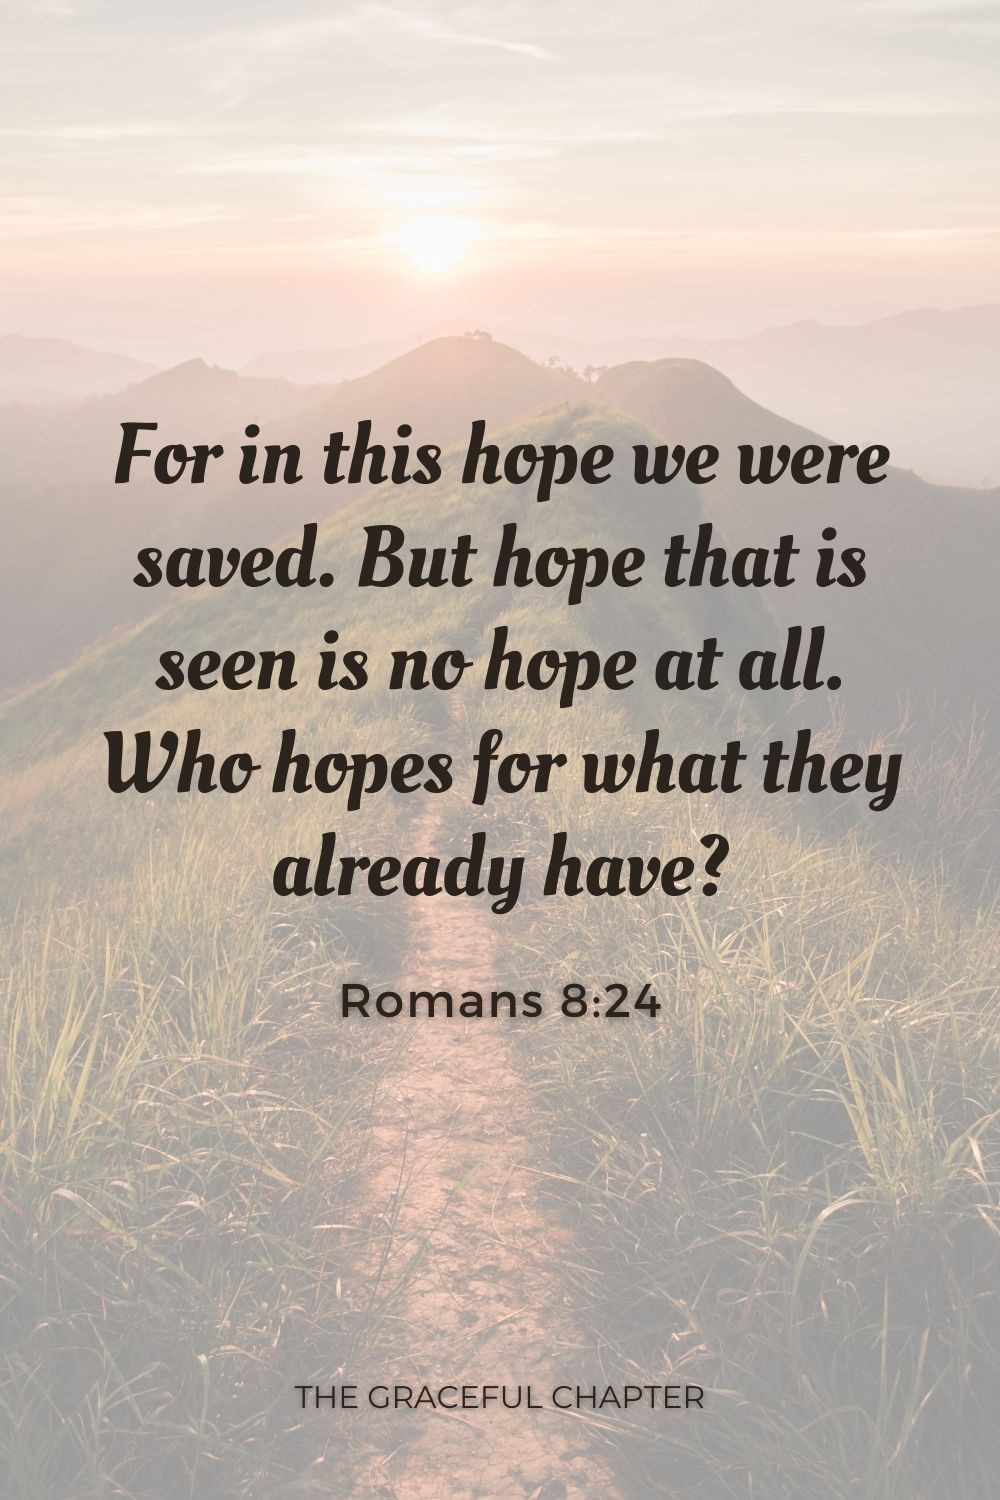 For in this hope we were saved. But hope that is seen is no hope at all. Who hopes for what they already have? Romans 8:24